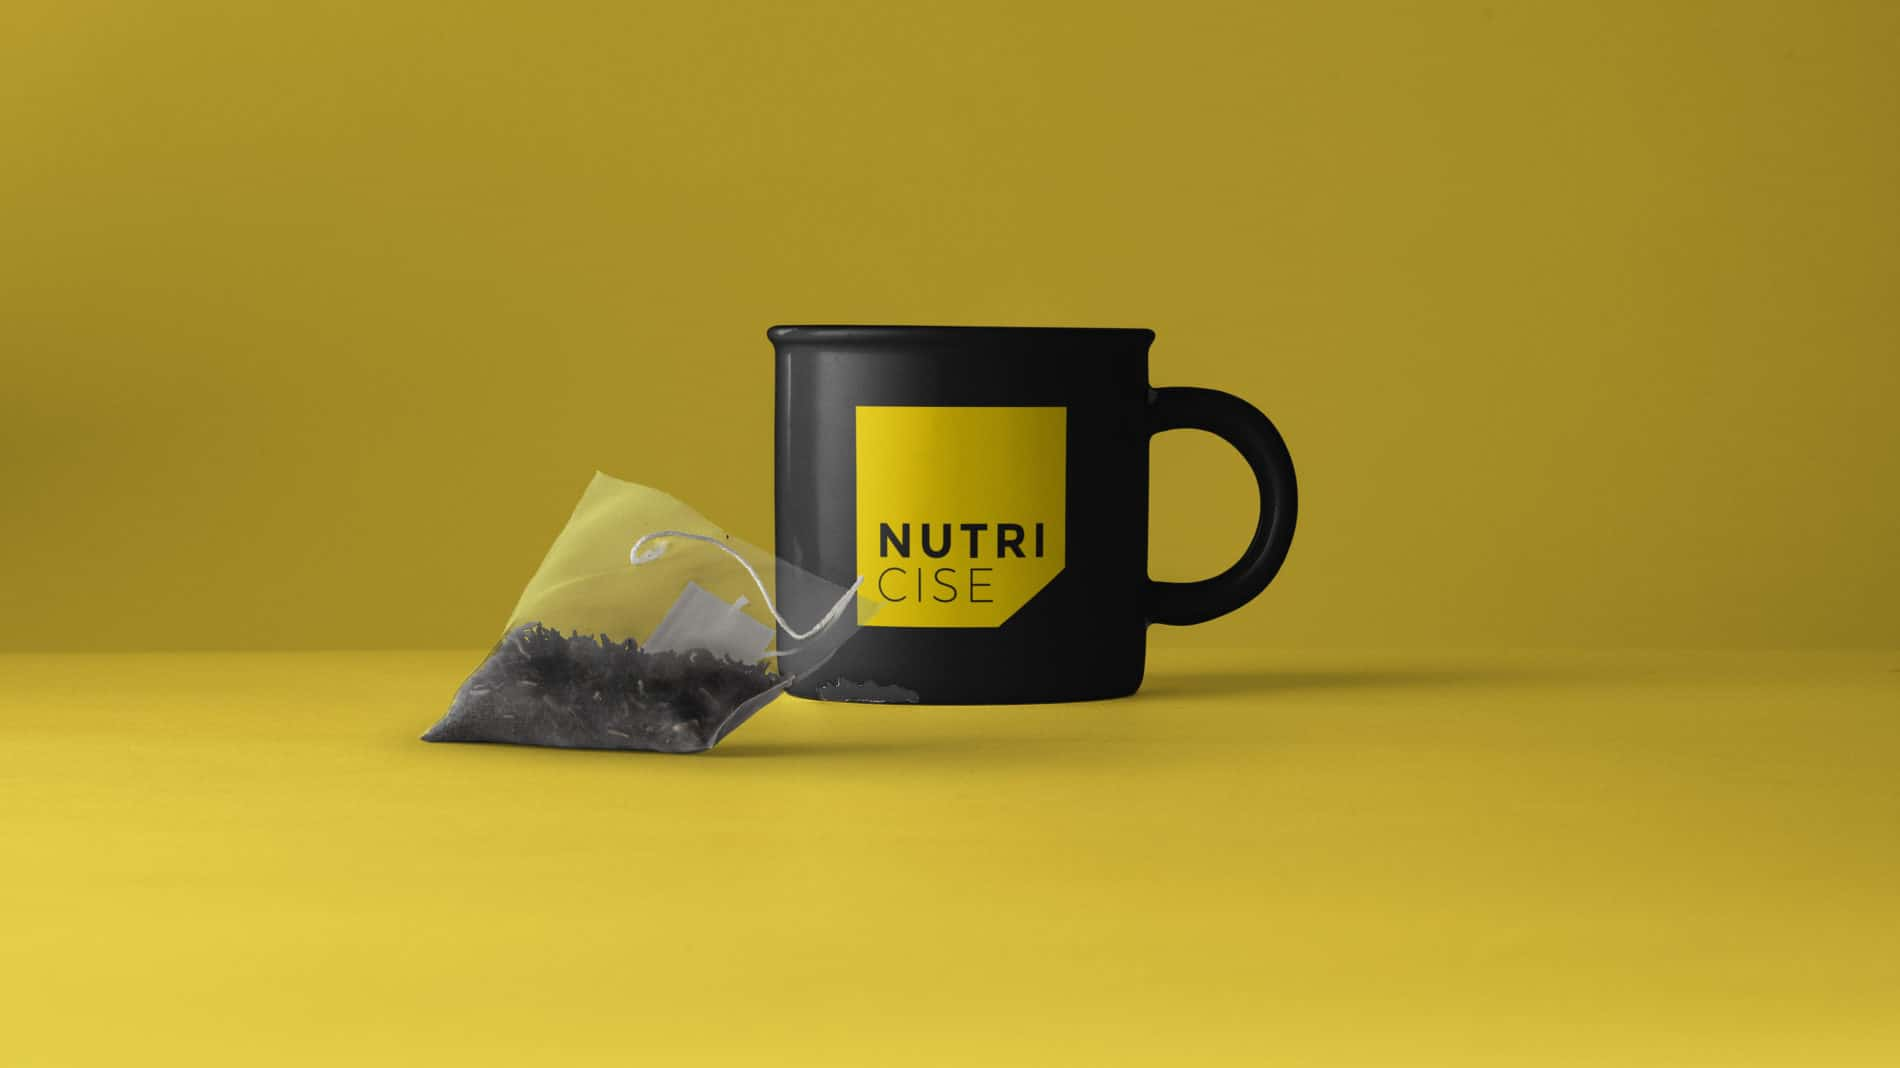 Image of Nutricise cup